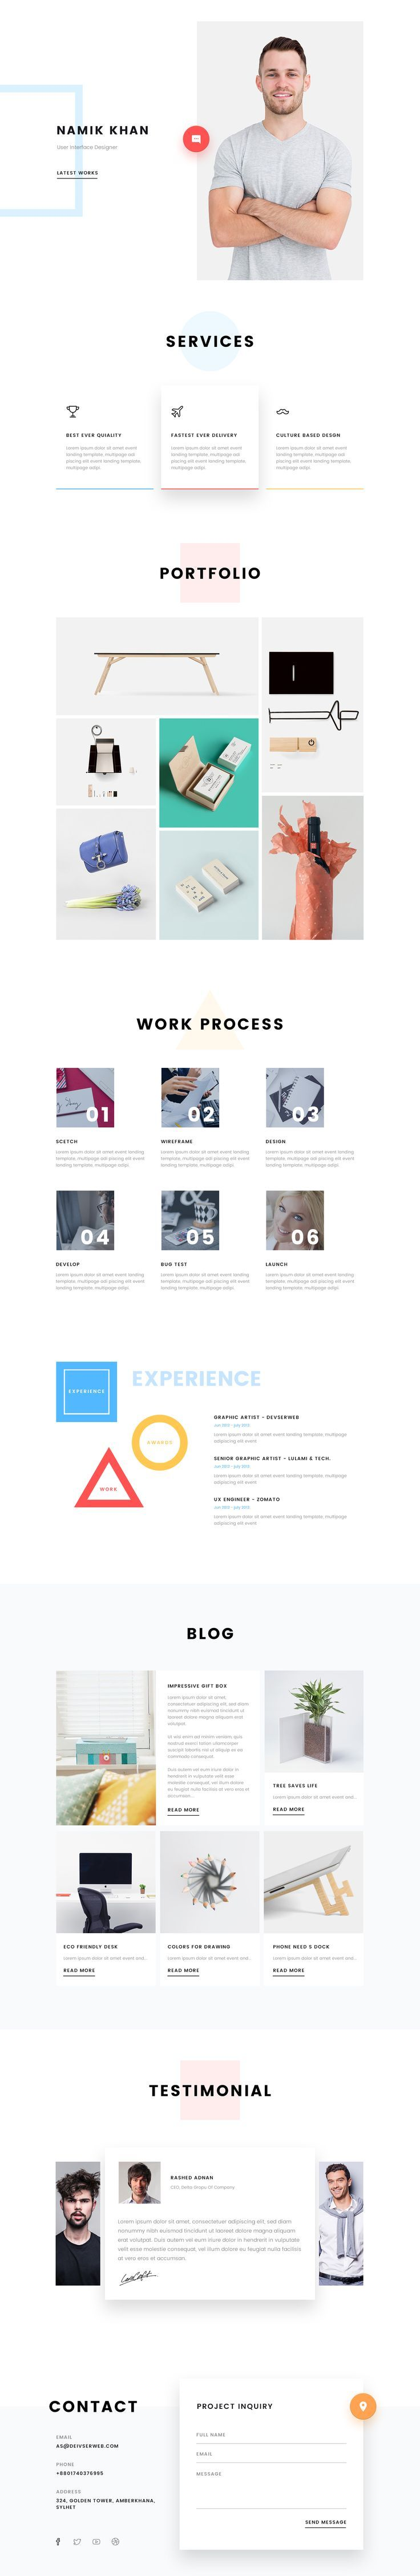 Personal CV/Resume by Ali Sayed - as seen on Dribbble